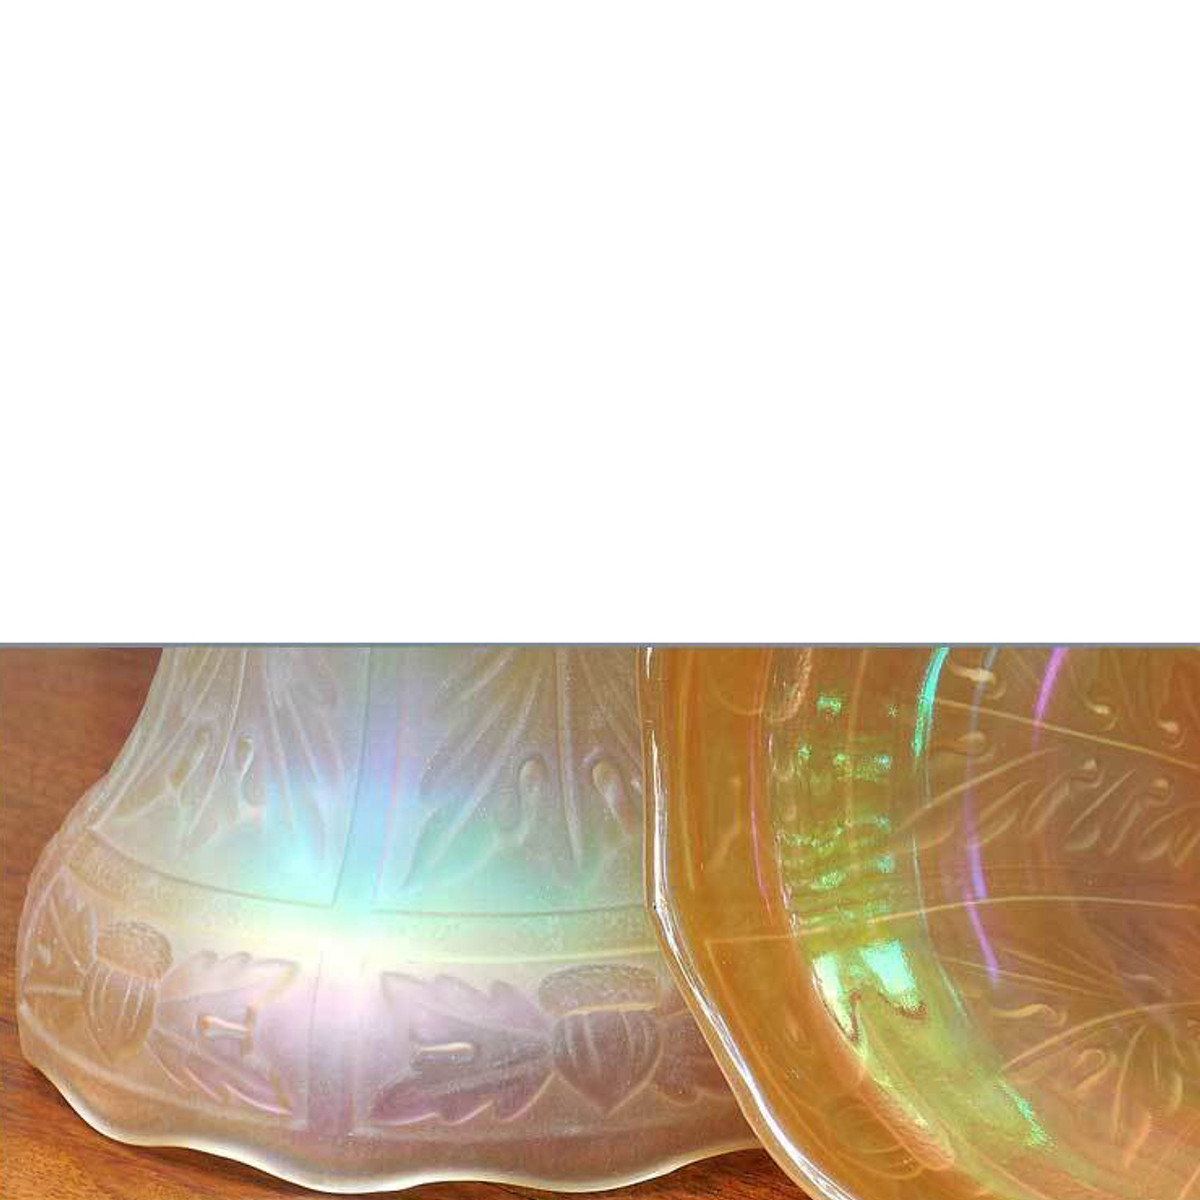 L14240 - Pair of Antique Carnival Glass Shades